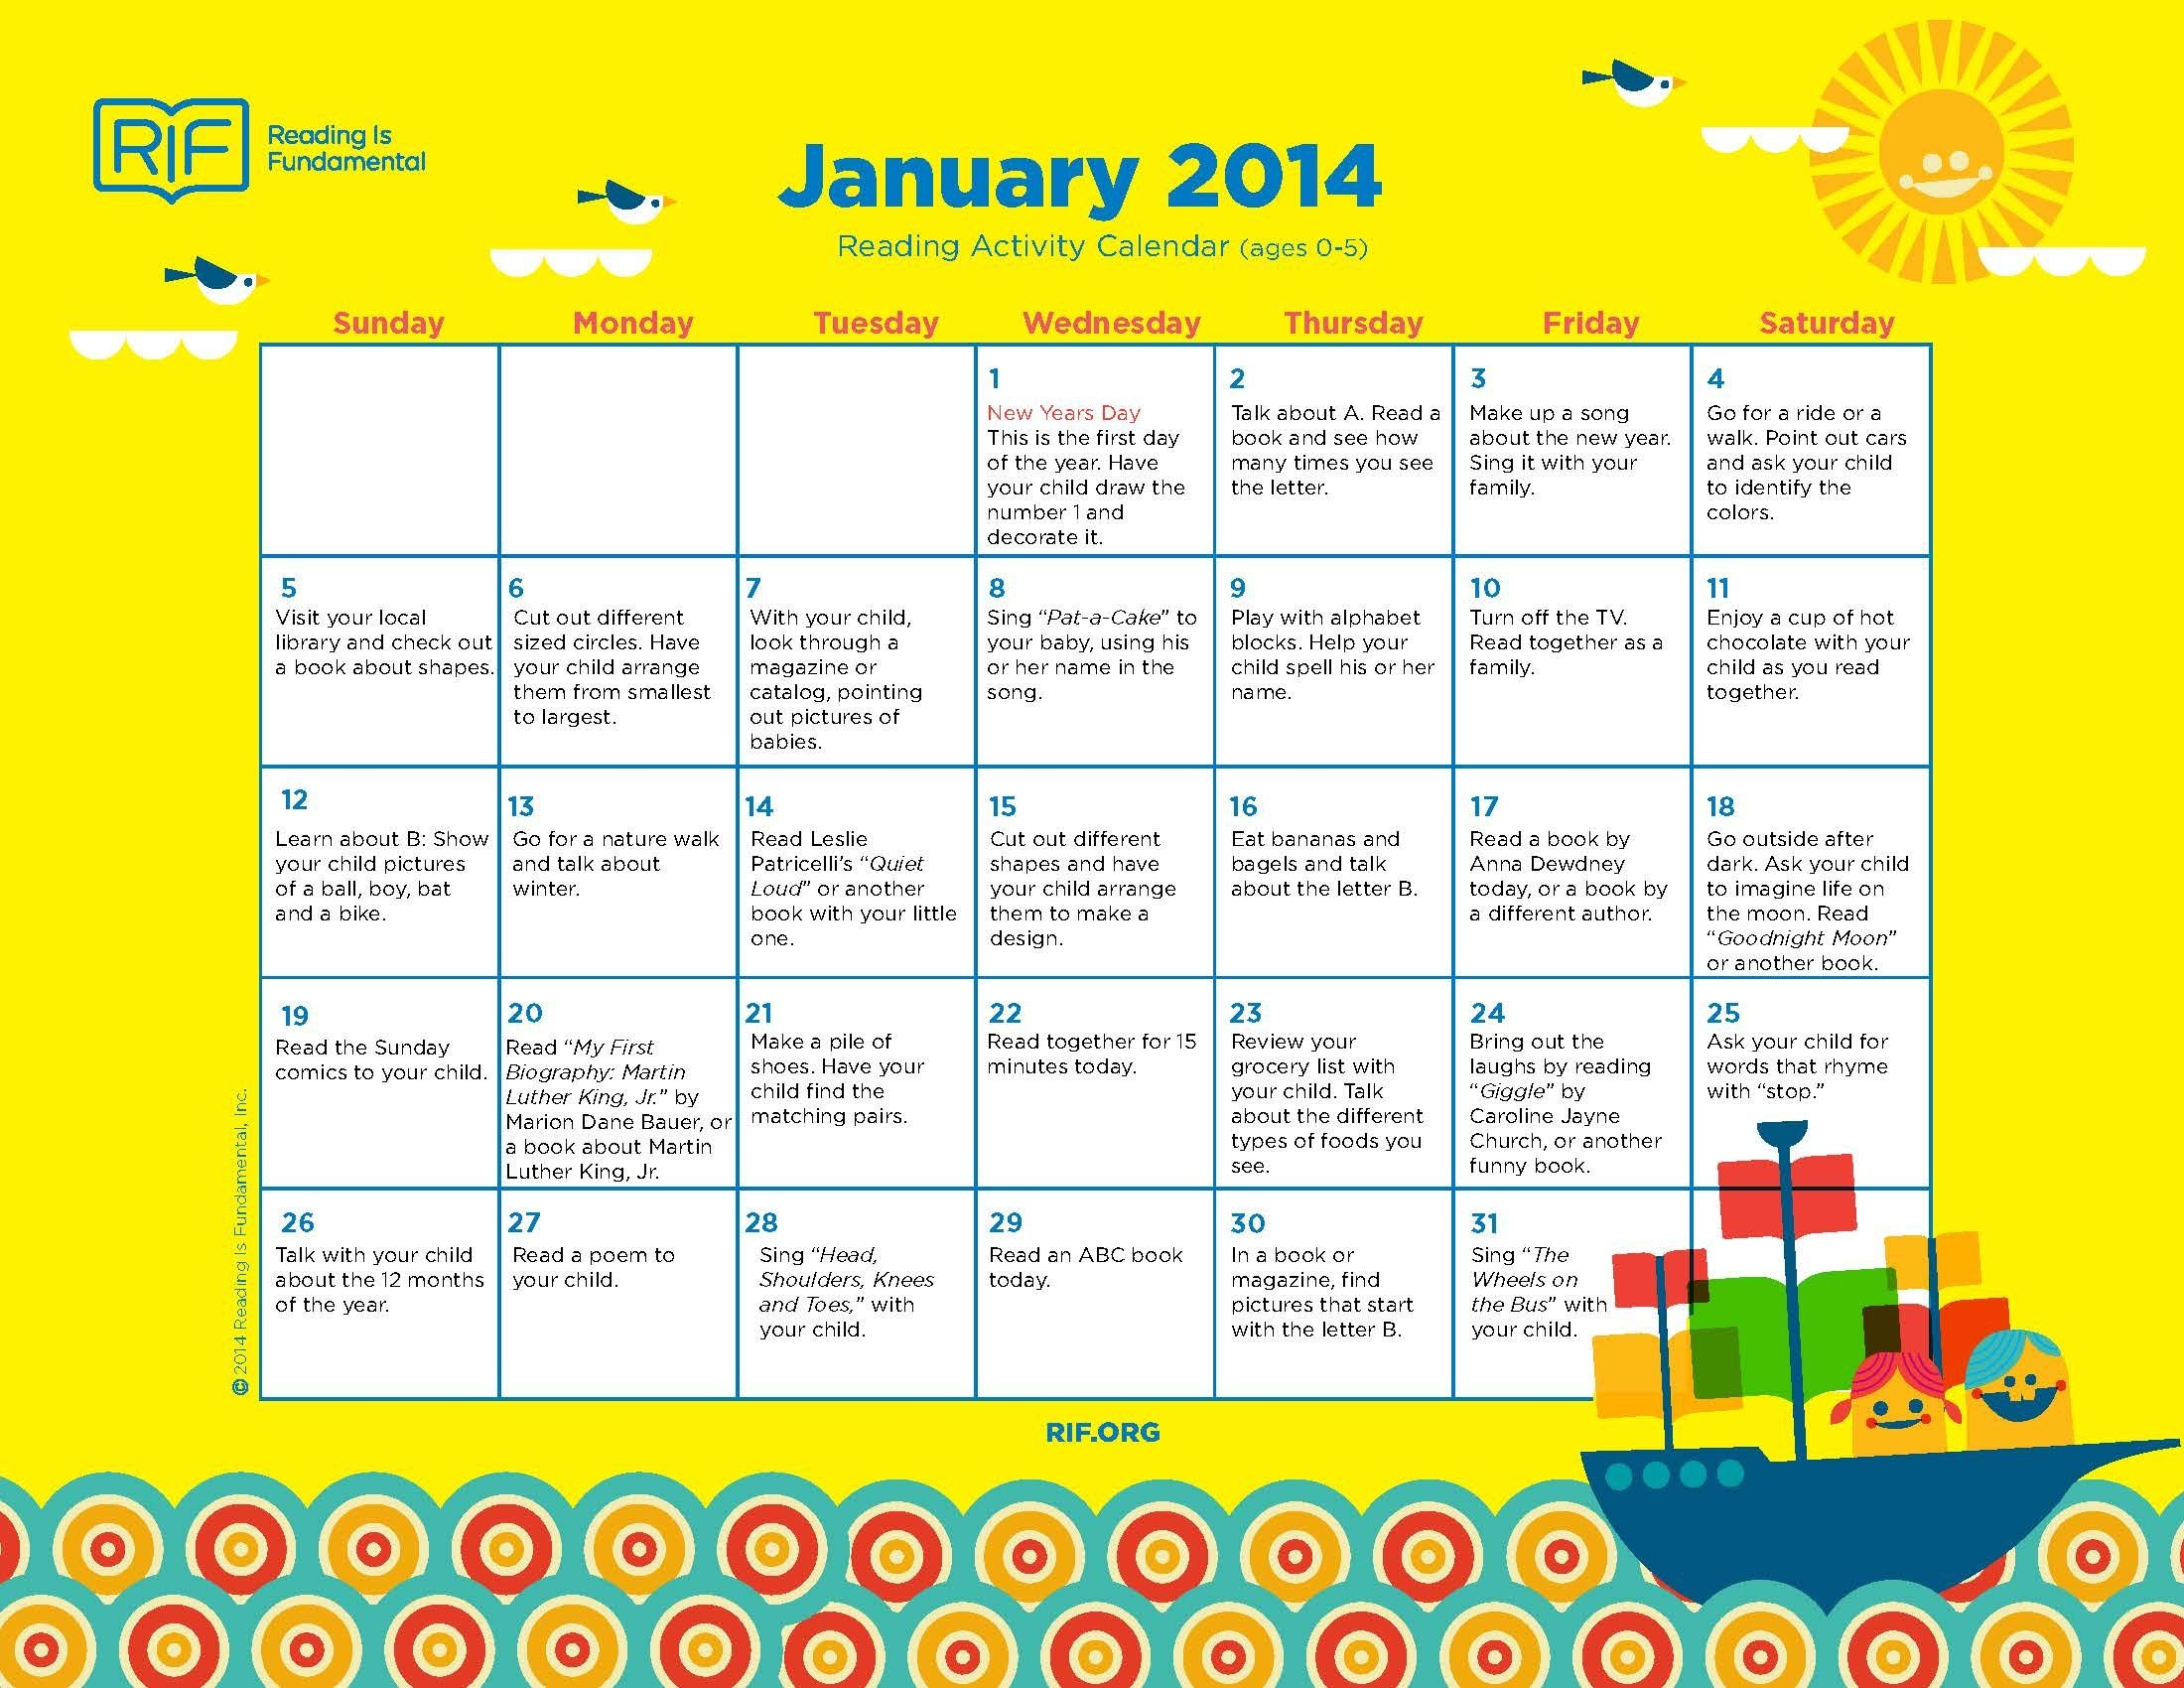 Free Downloads Of Monthly Reading Activity Calendars From Reading Is